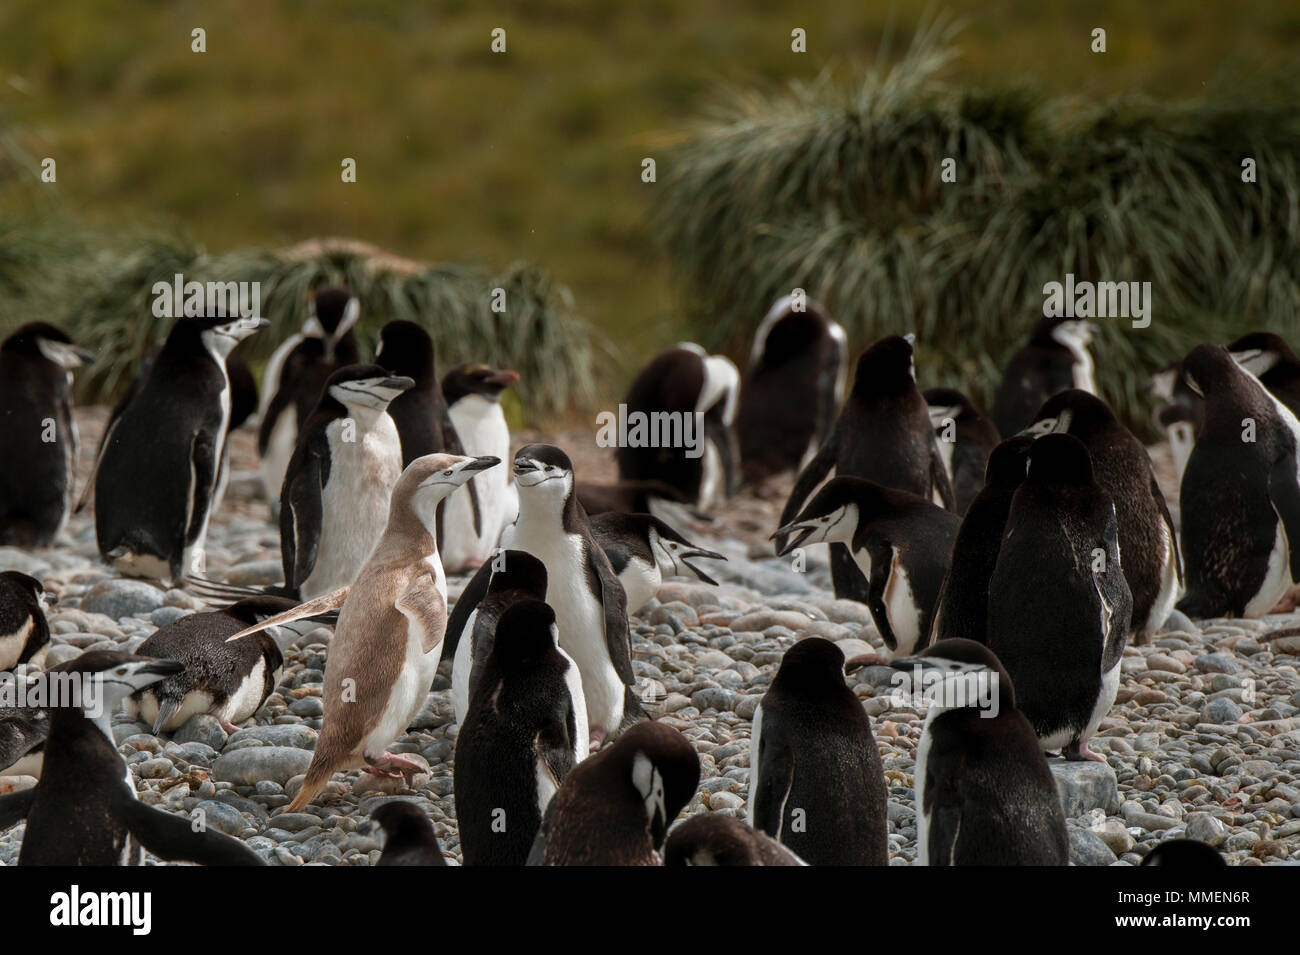 British Overseas Territory, South Georgia, Cooper Bay. Macaroni and chinstrap penguins on beach. One 'blonde' chinstrap penguin. - Stock Image